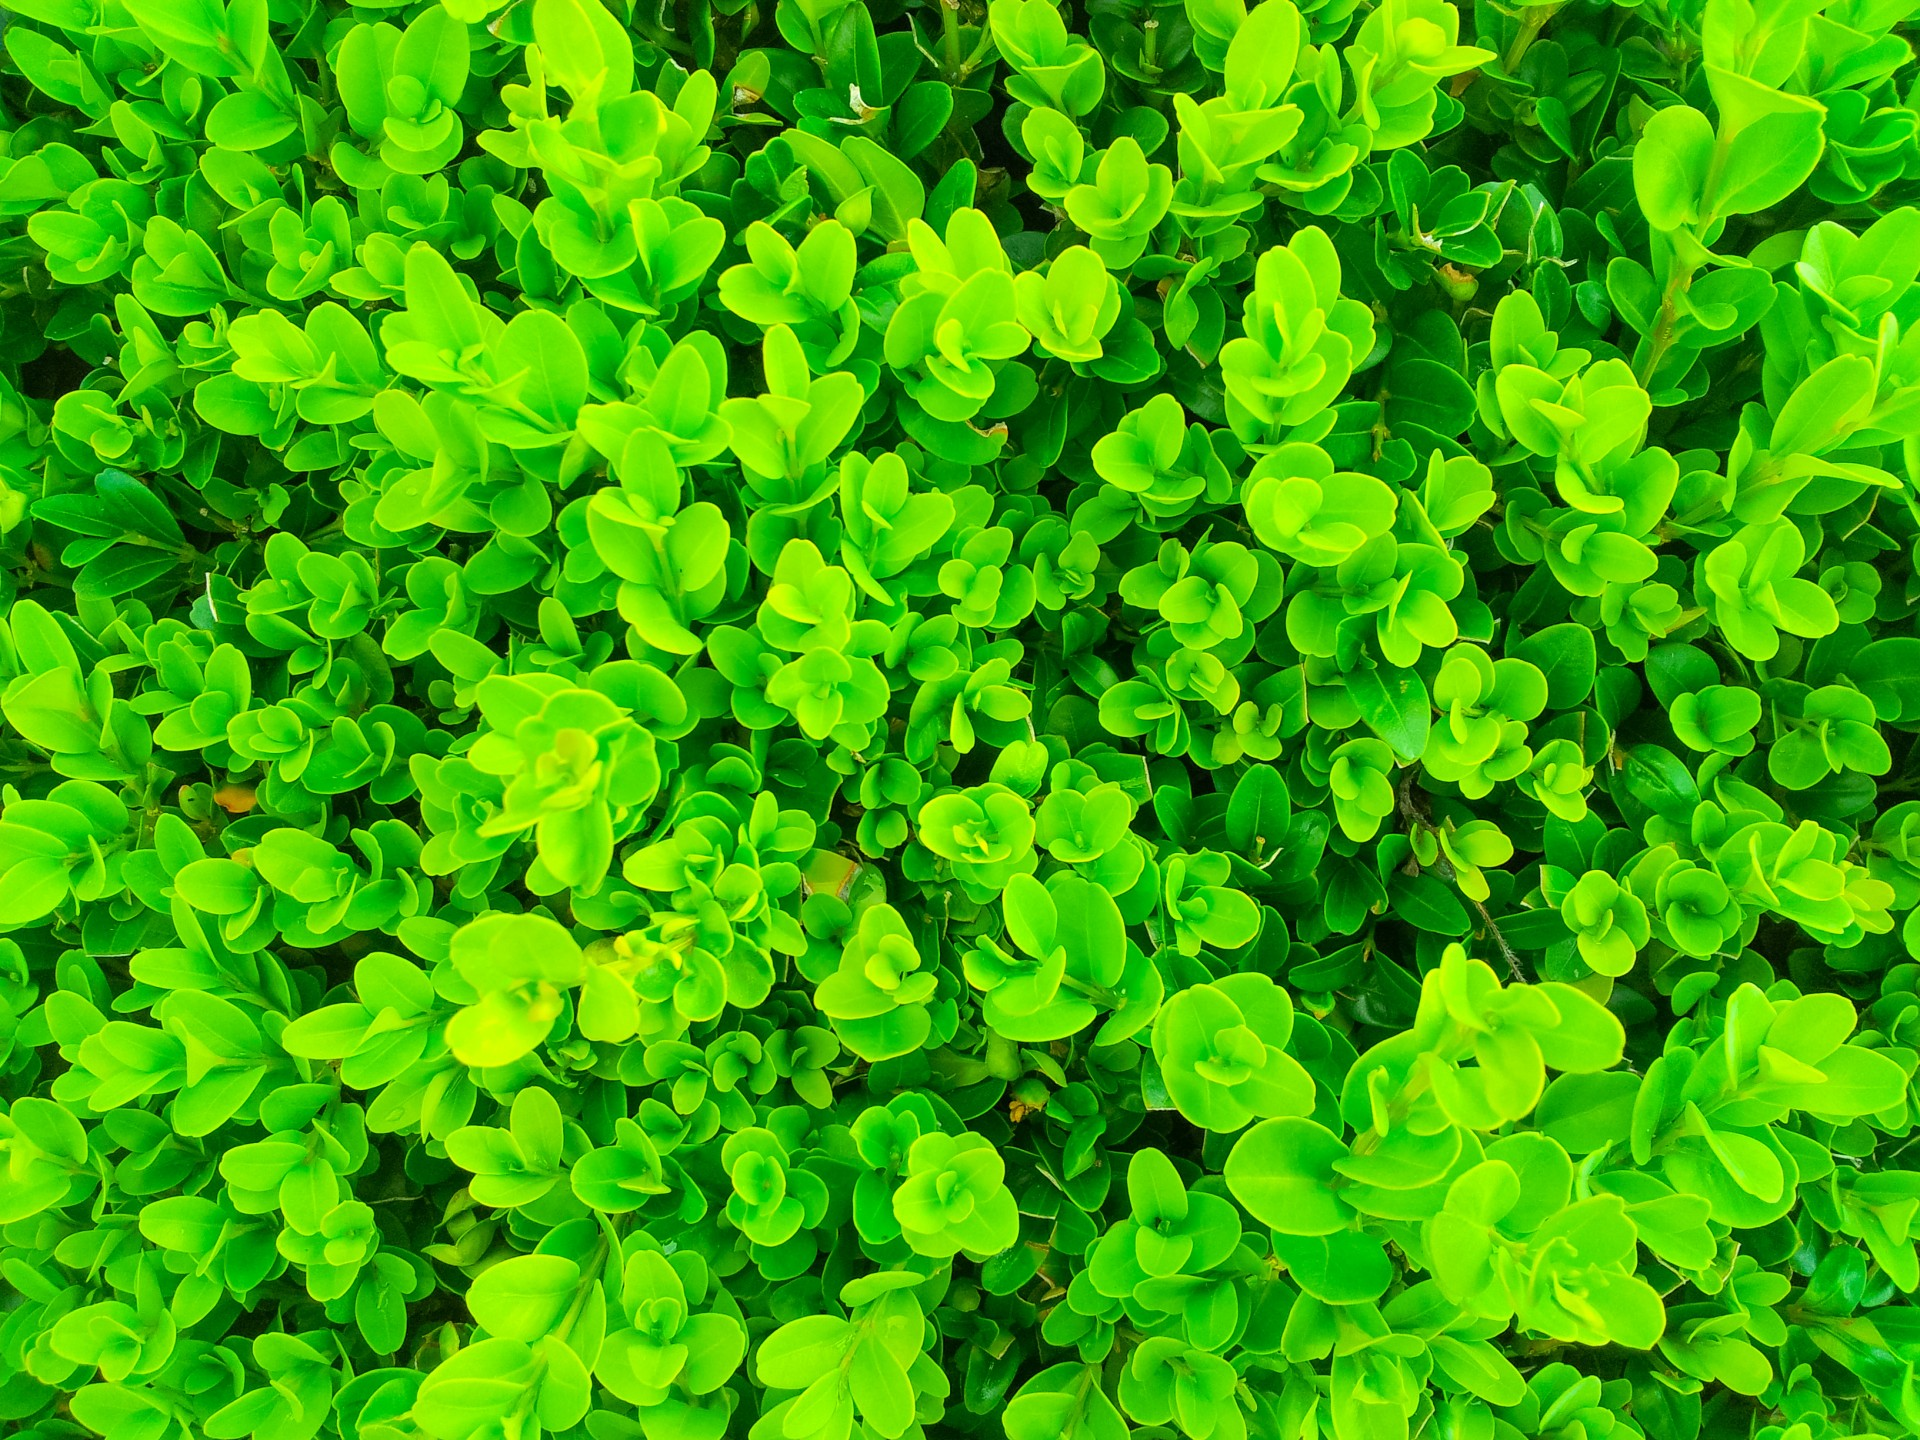 Green Houseplants Green Plants Pattern Free Stock Photo Public Domain Pictures